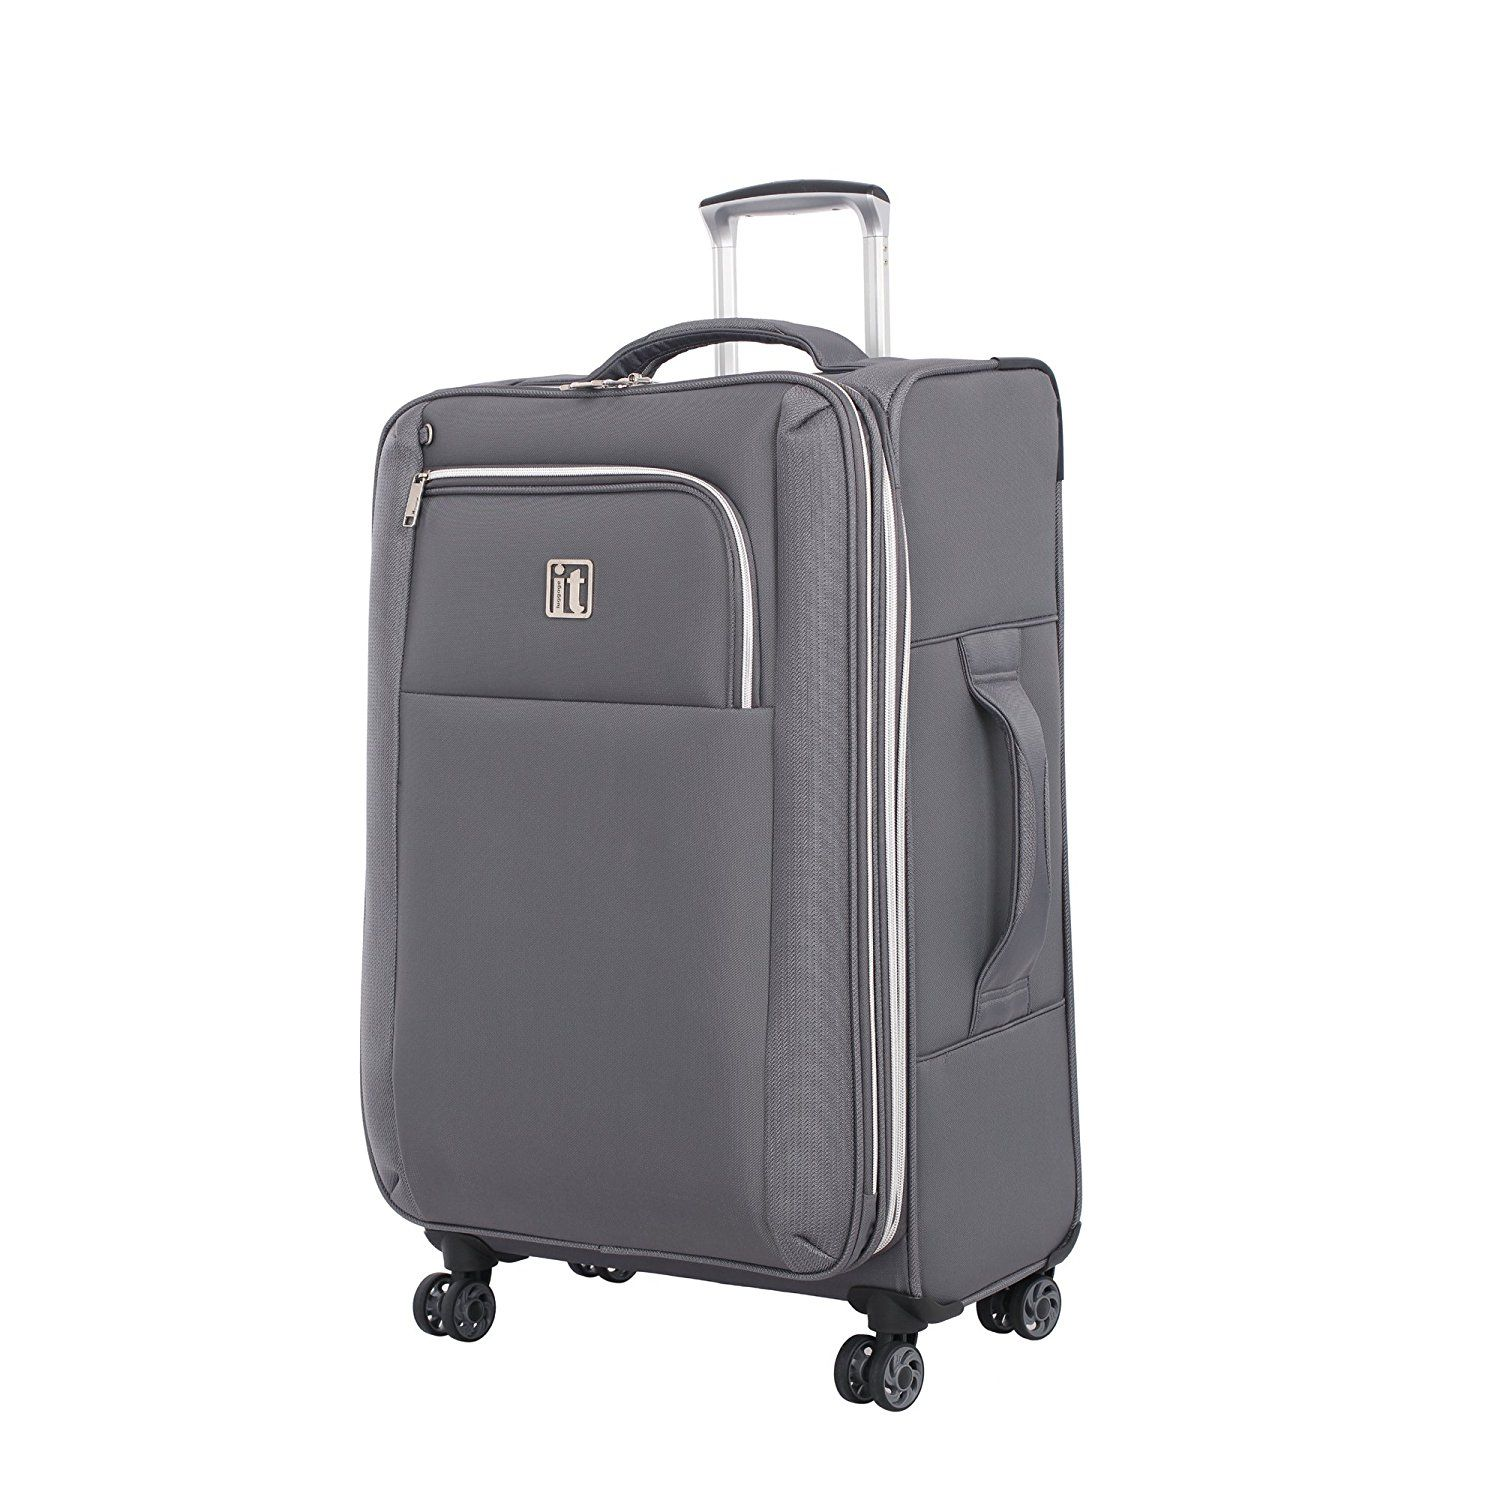 9a4fc09db it luggage Megalite X-Weave 27.8' 8 Wheel Expandable Lightweight Carry-On  *** For more information, visit image link. (This is an affiliate link) # Luggage